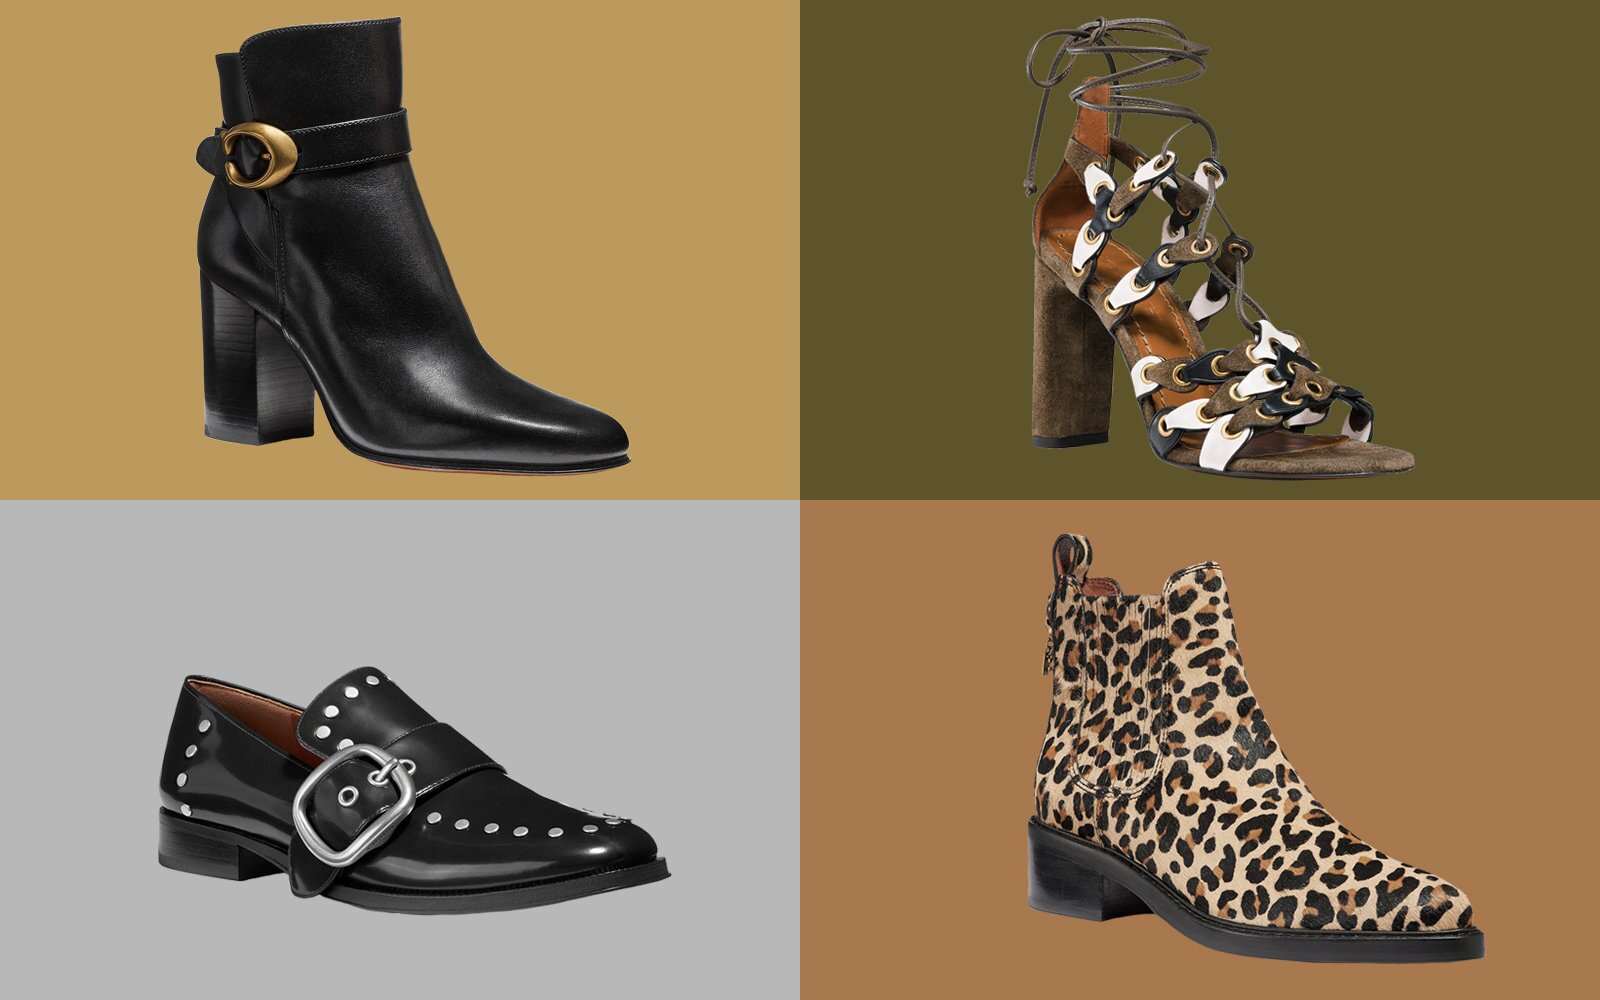 b3a9d8d130c The Best Shoes on Sale at Coach Right Now